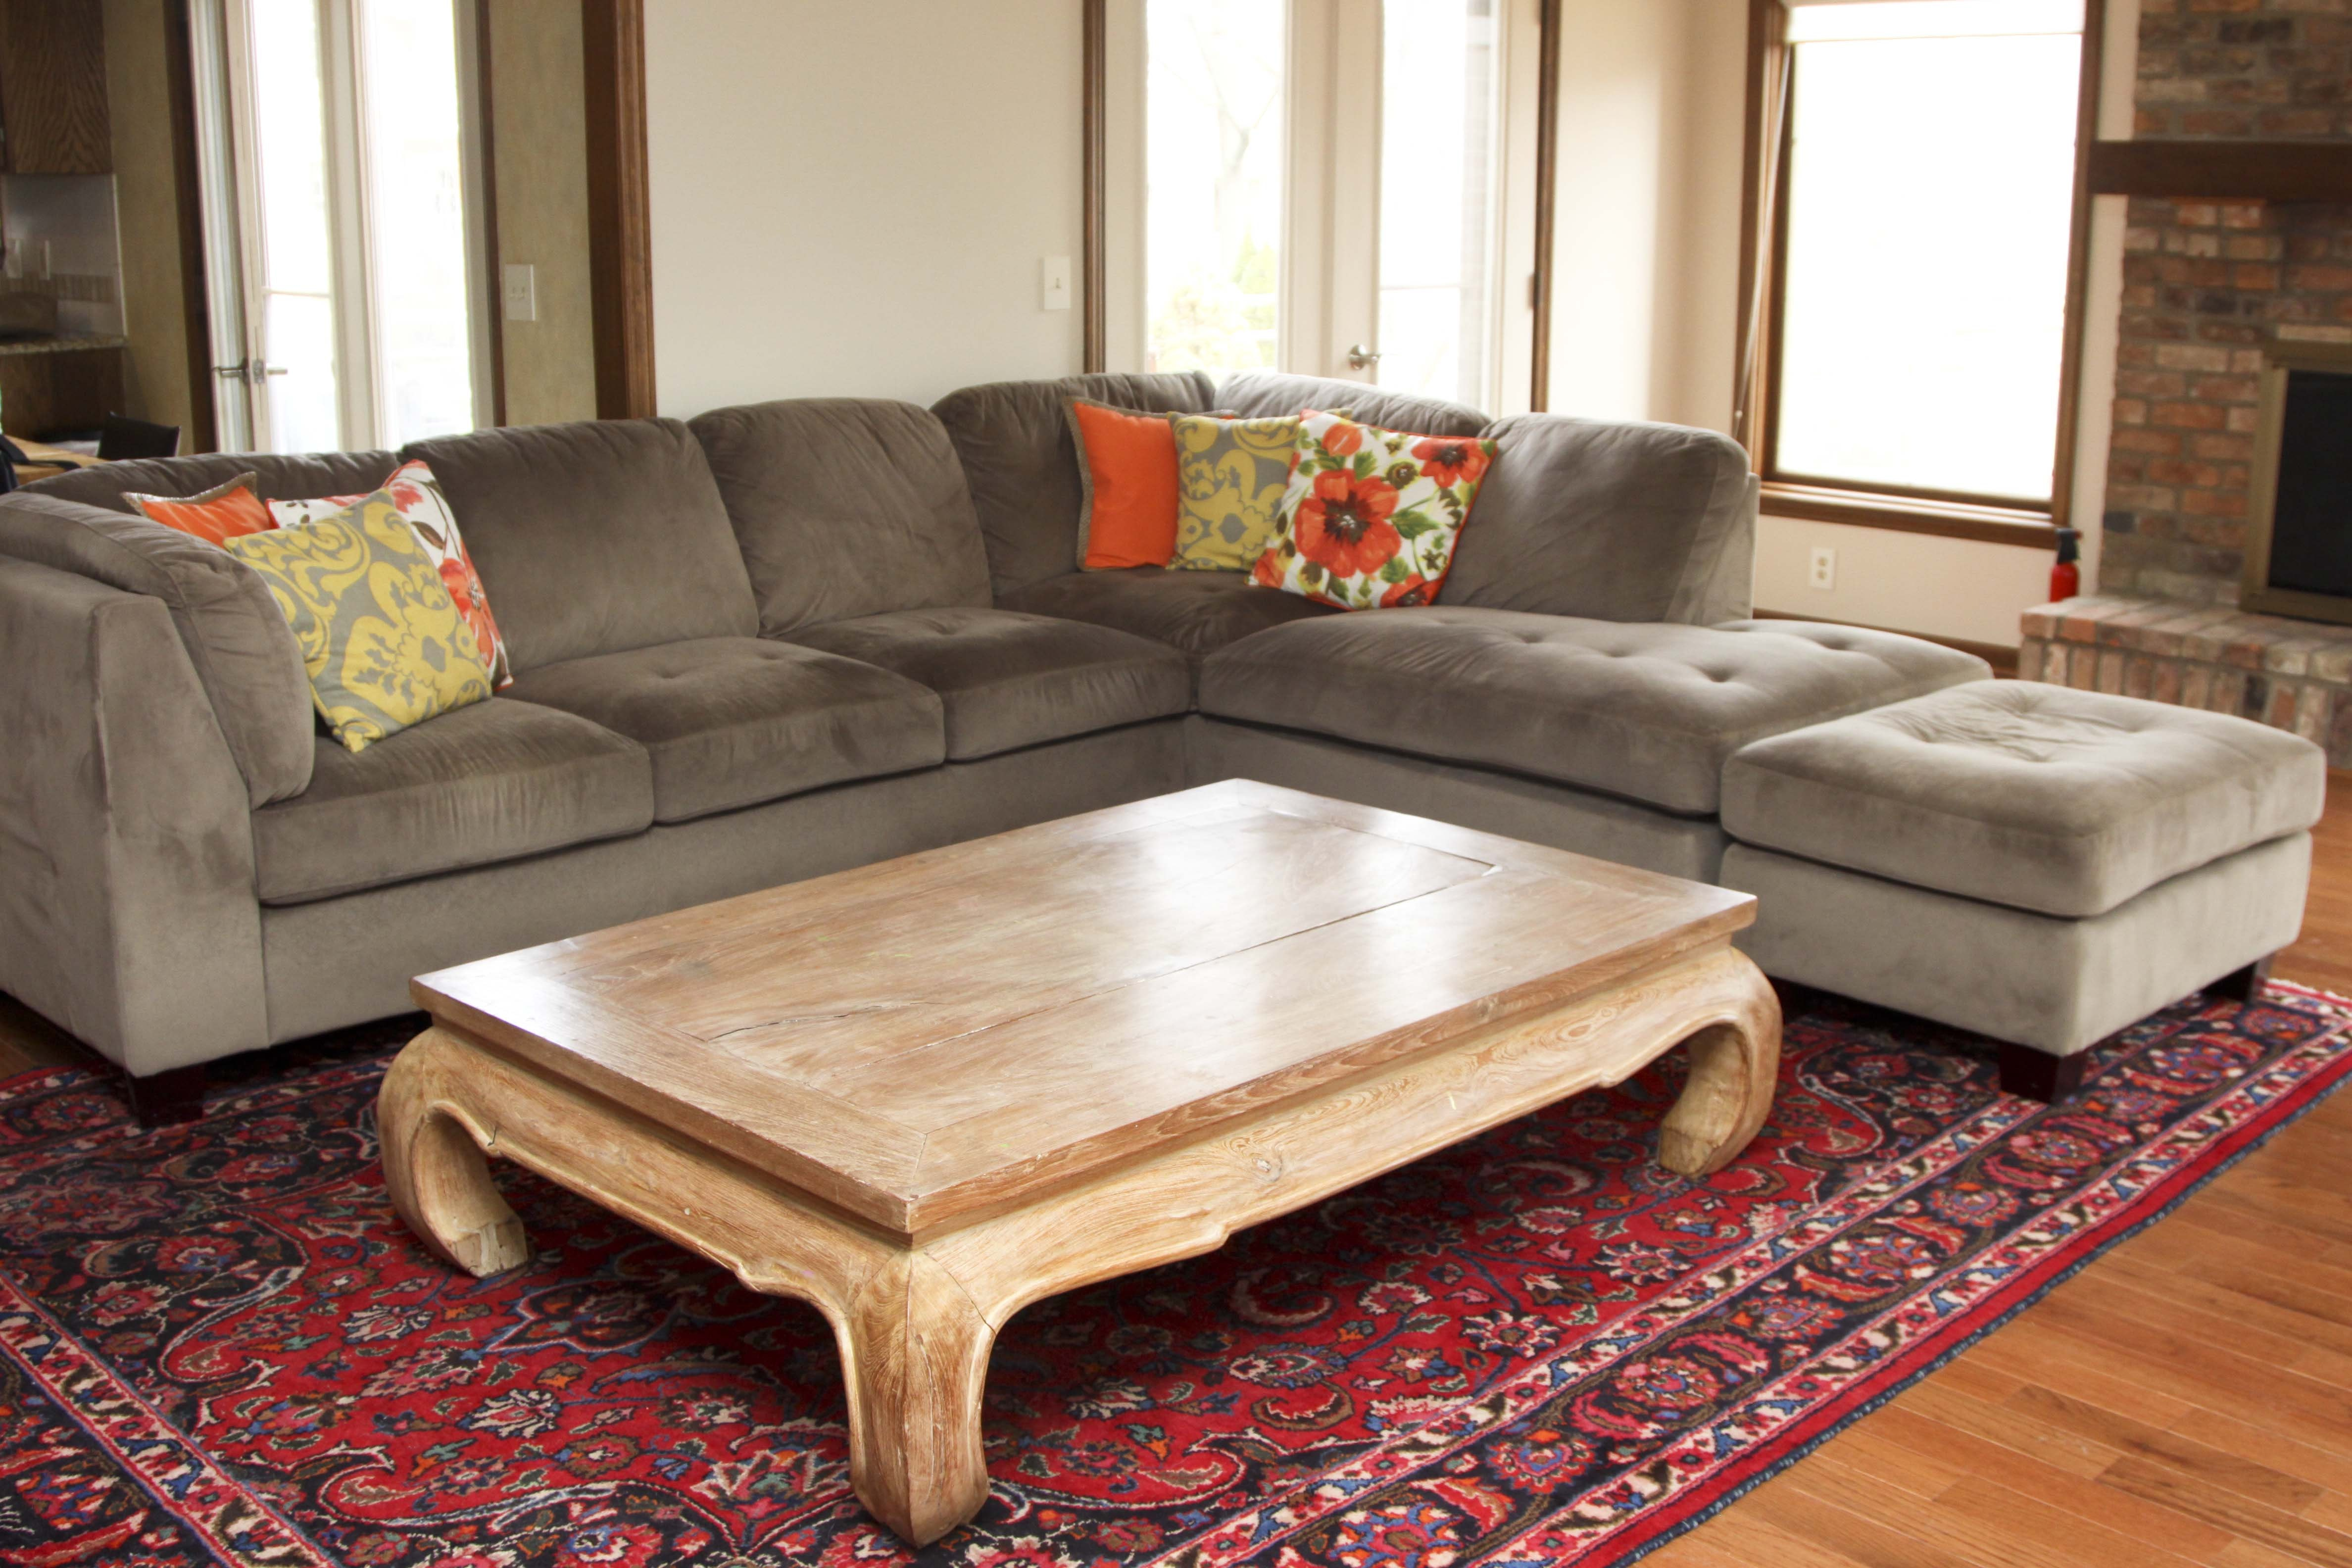 Sectional Sofa with Matching Ottoman